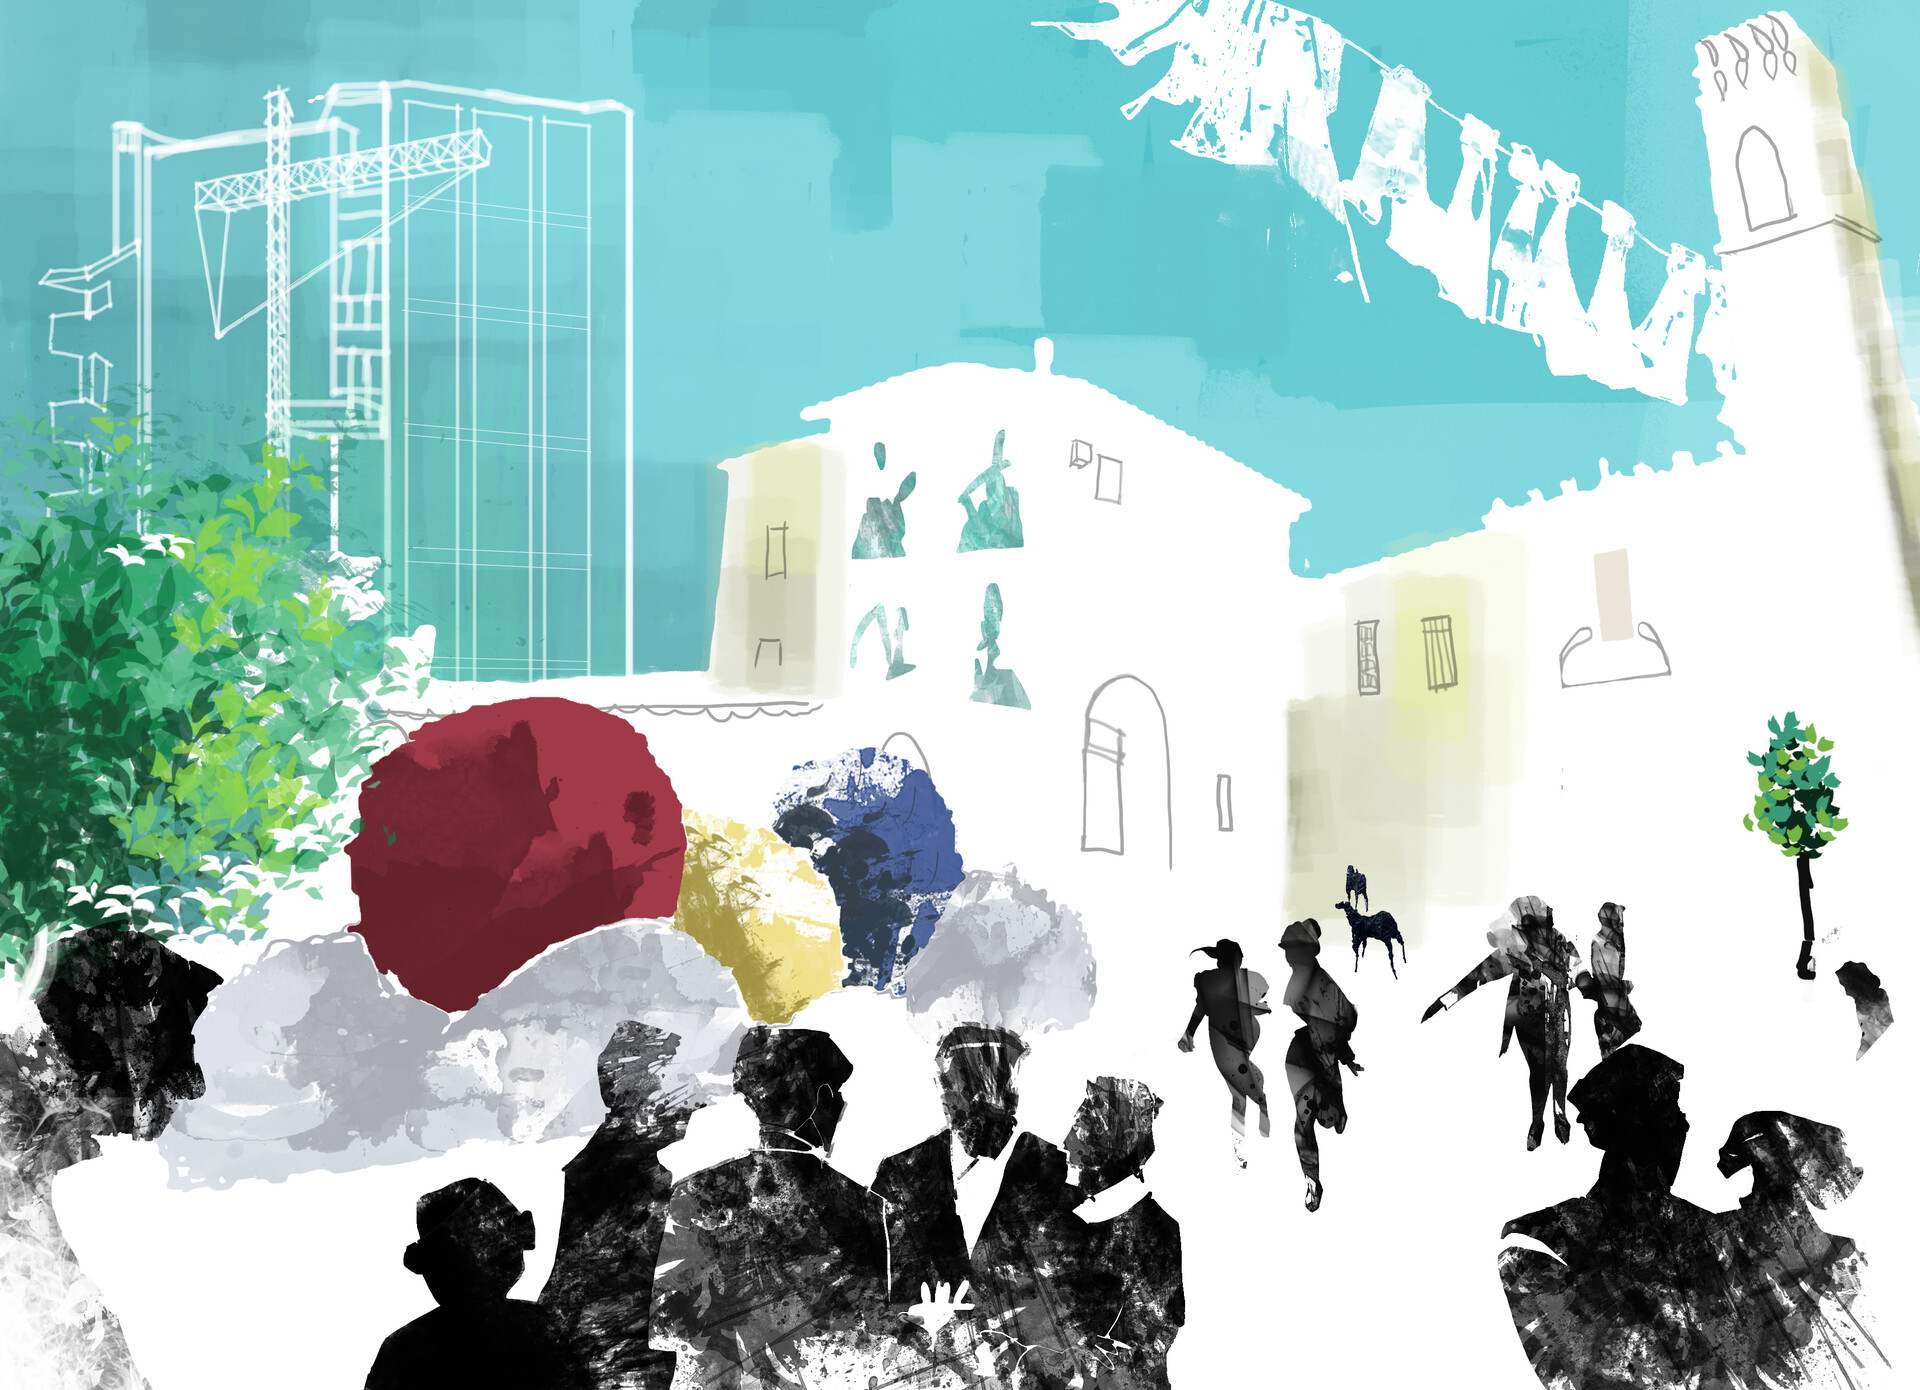 San Sperate Illustration